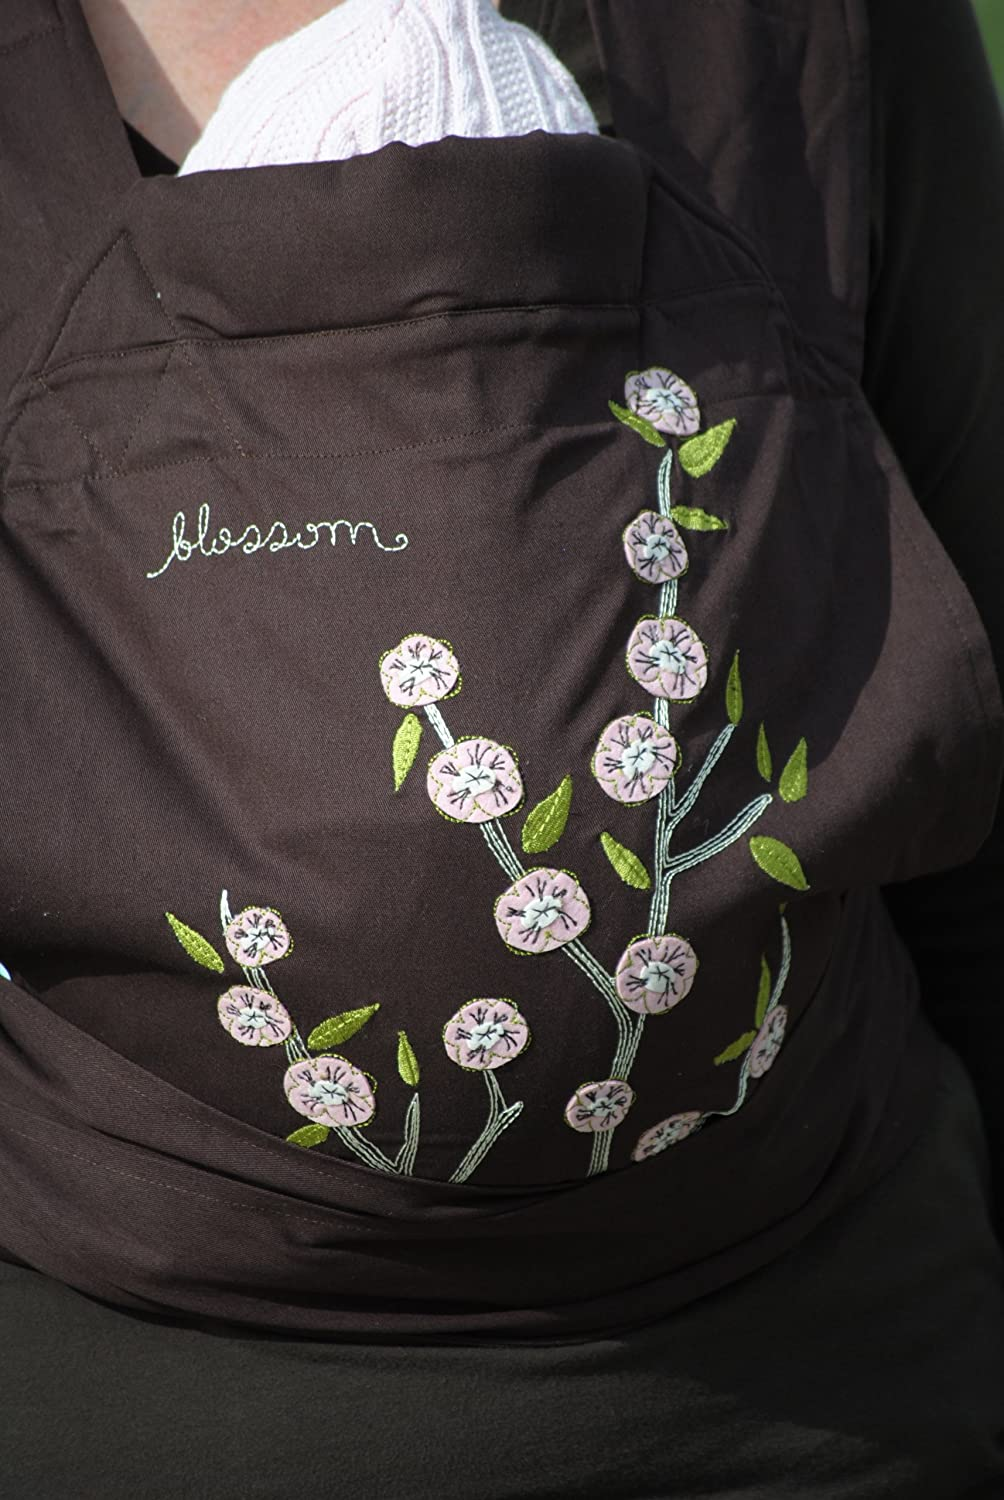 FreeHand Mei Tai Baby Carrier Embroidered Designs, Blossom Discontinued by Manufacturer